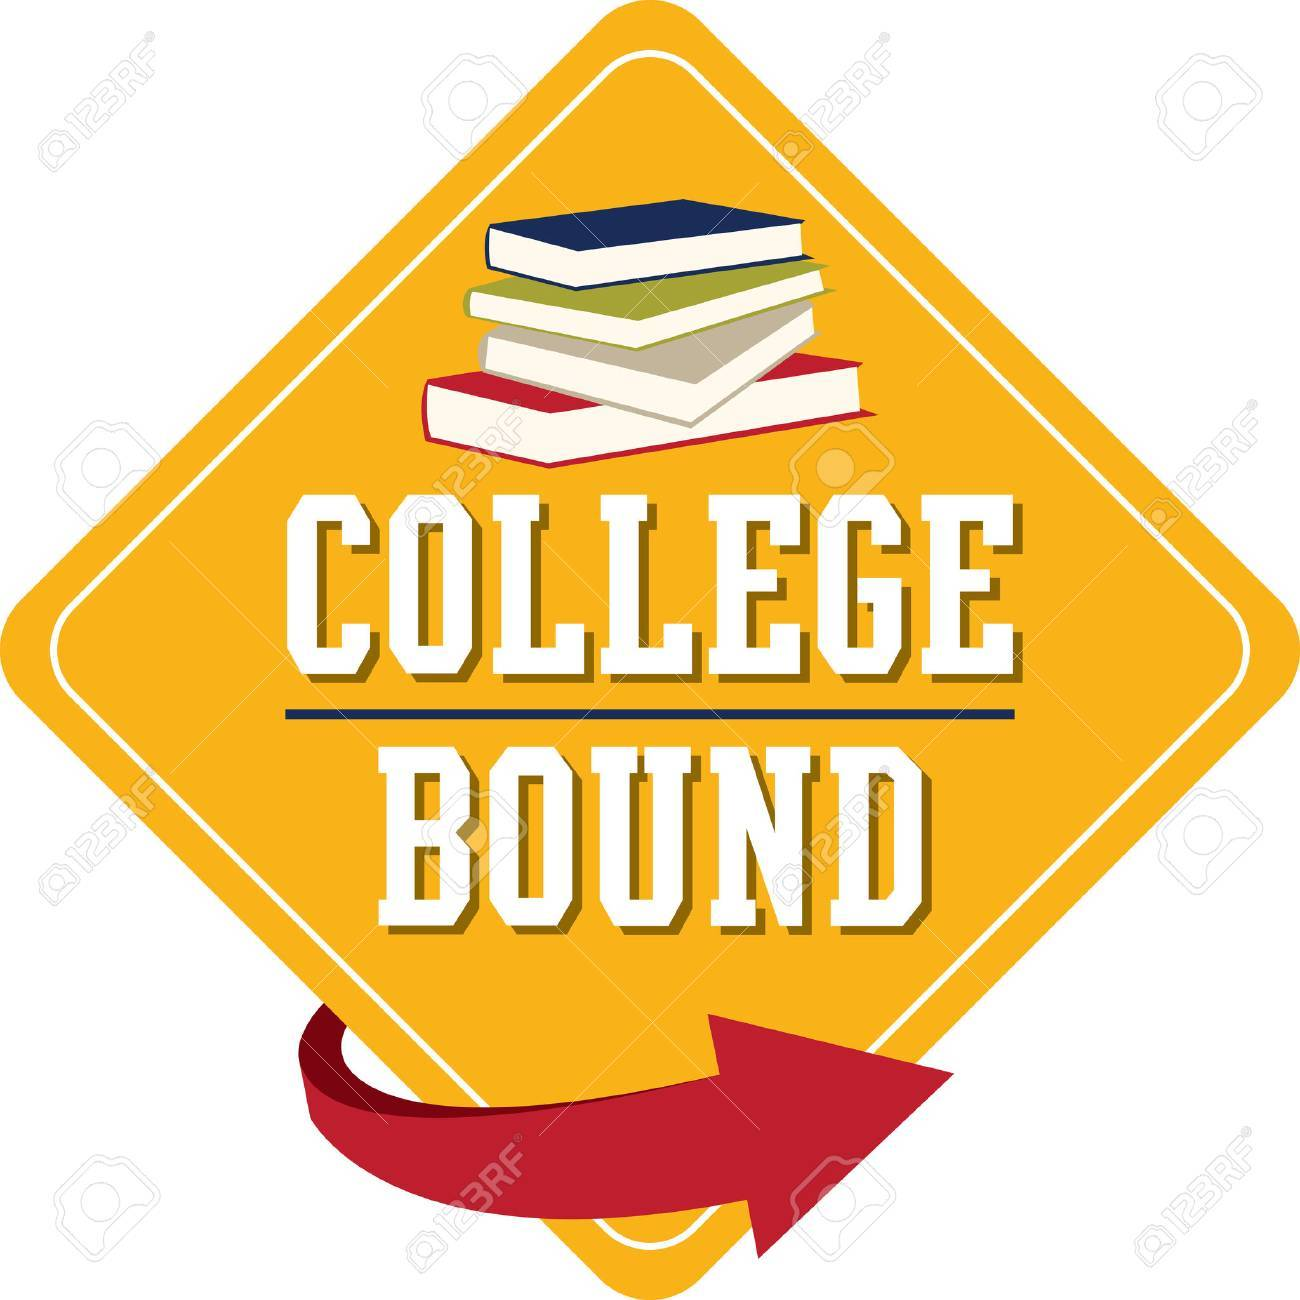 College bound clipart 4 » Clipart Station.